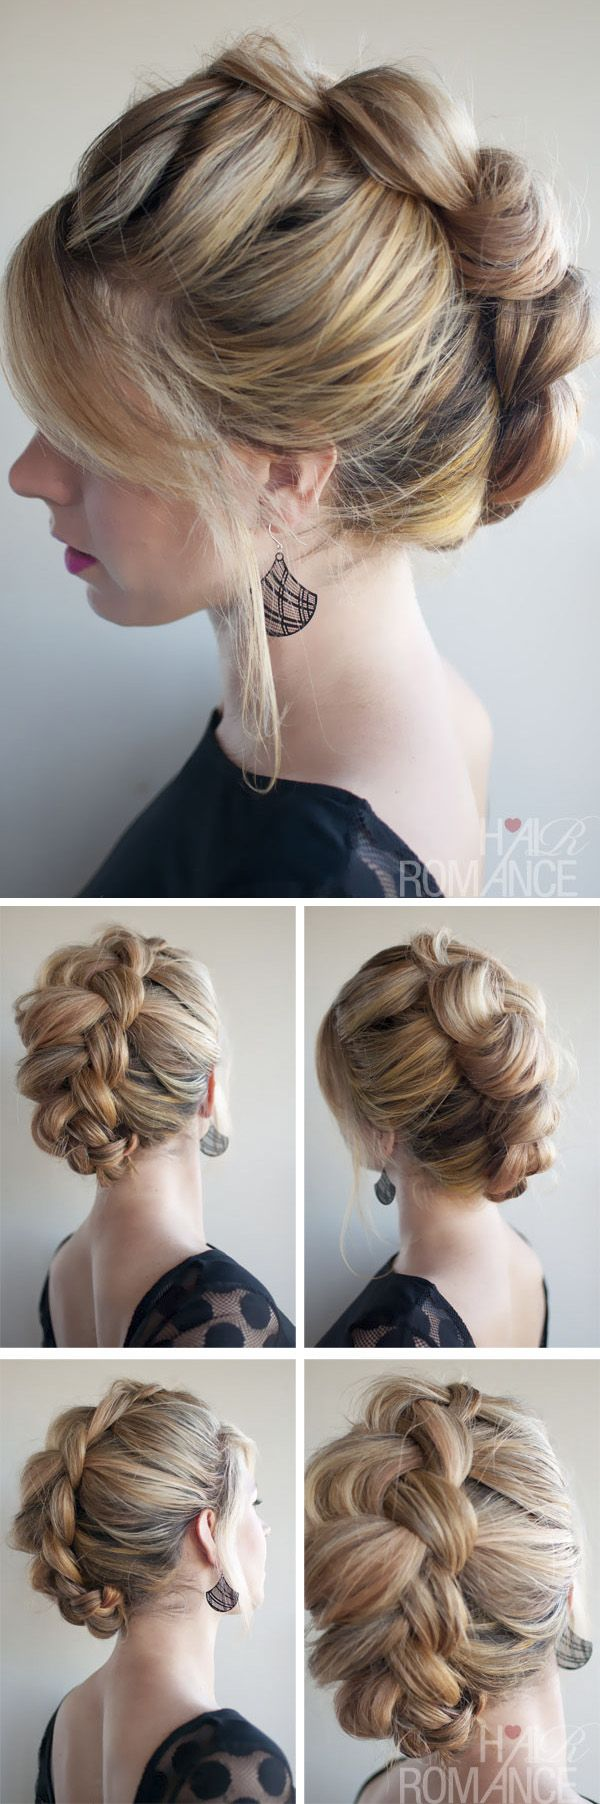 Stupendous 1000 Ideas About French Braid Mohawk On Pinterest Braided Hairstyle Inspiration Daily Dogsangcom